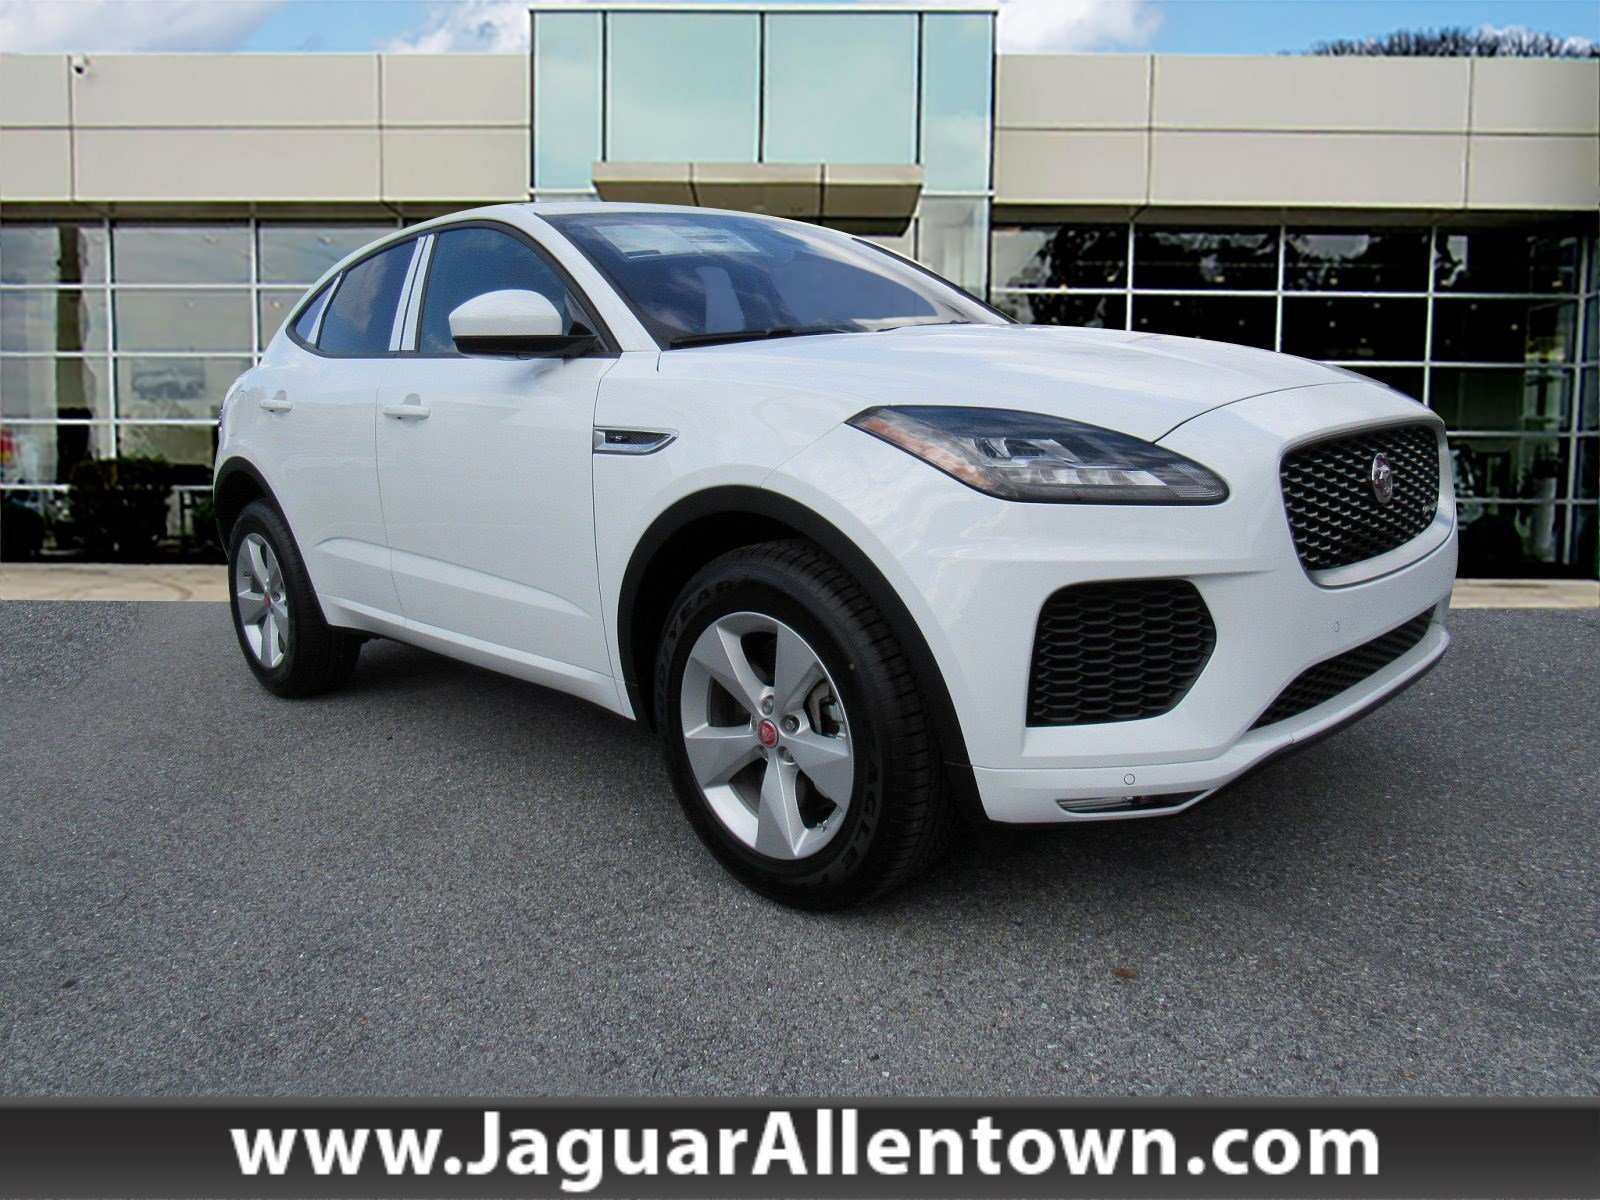 47 All New E Pace Jaguar 2019 Price